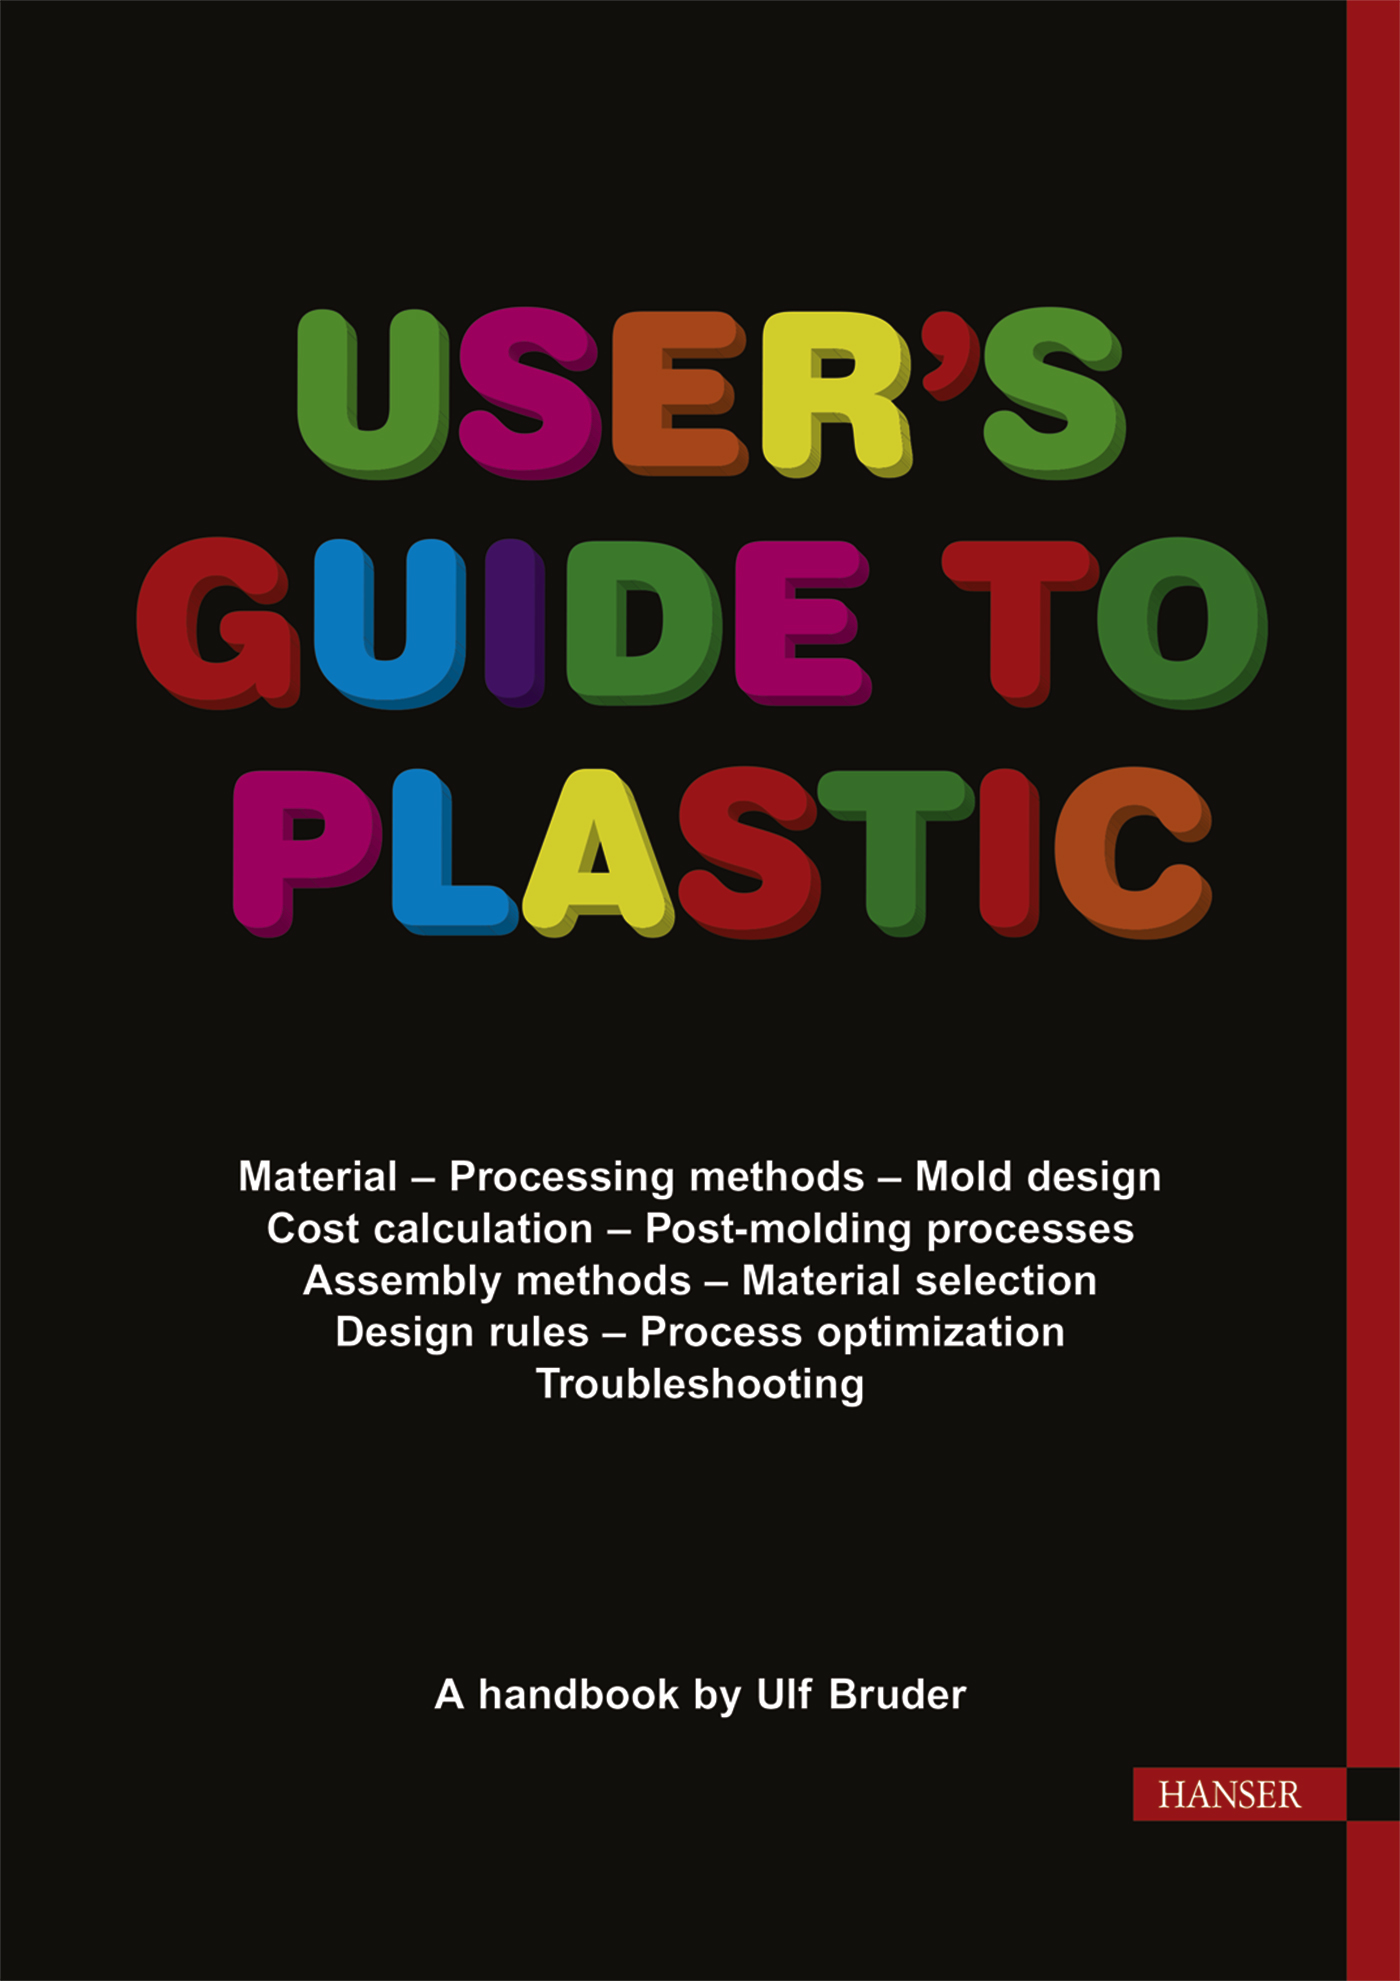 Bruder, User's Guide to Plastic, 978-1-56990-572-2